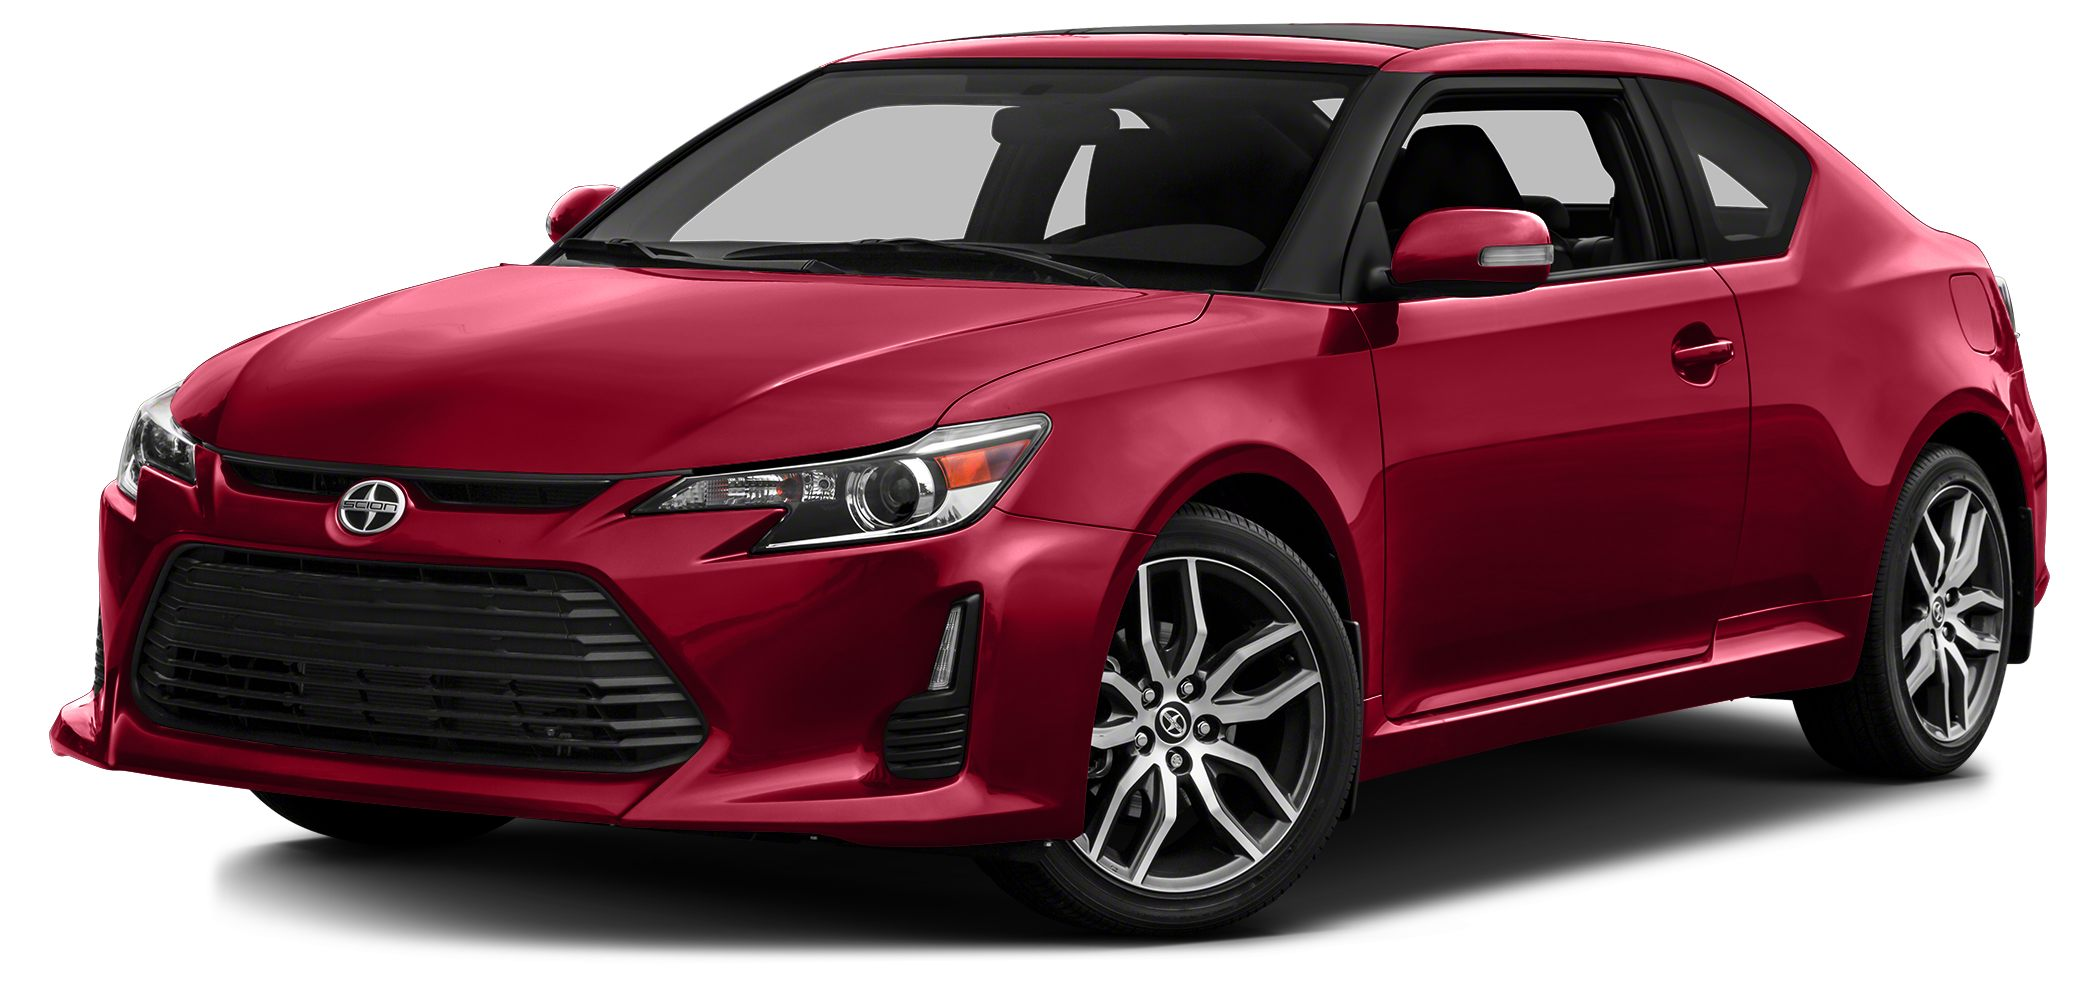 2014 Scion tC Glam